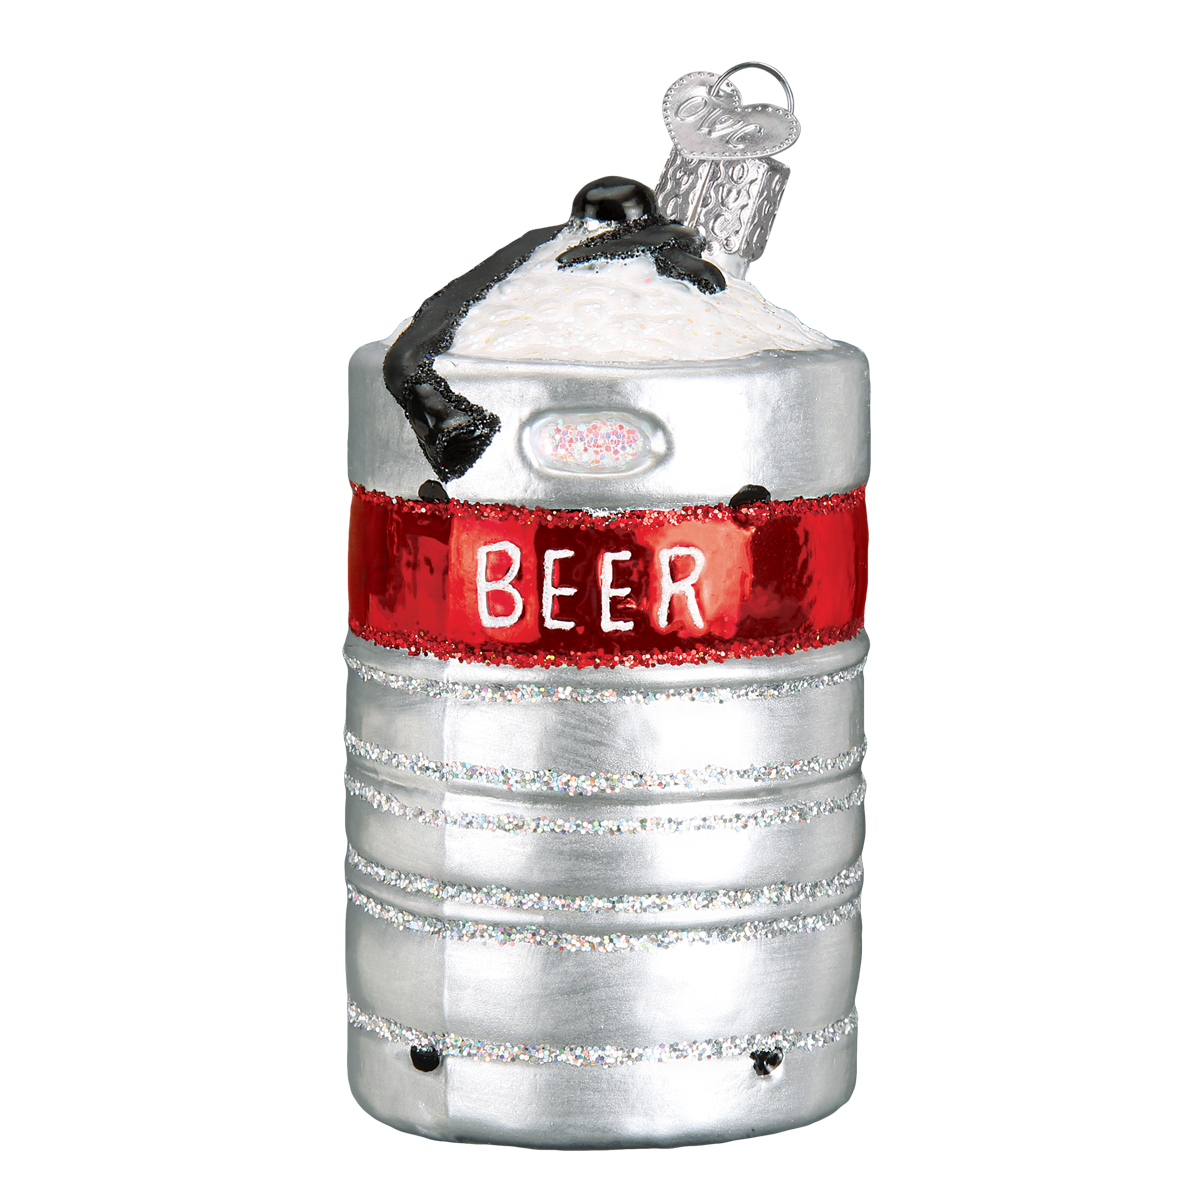 Beer Keg Ornament